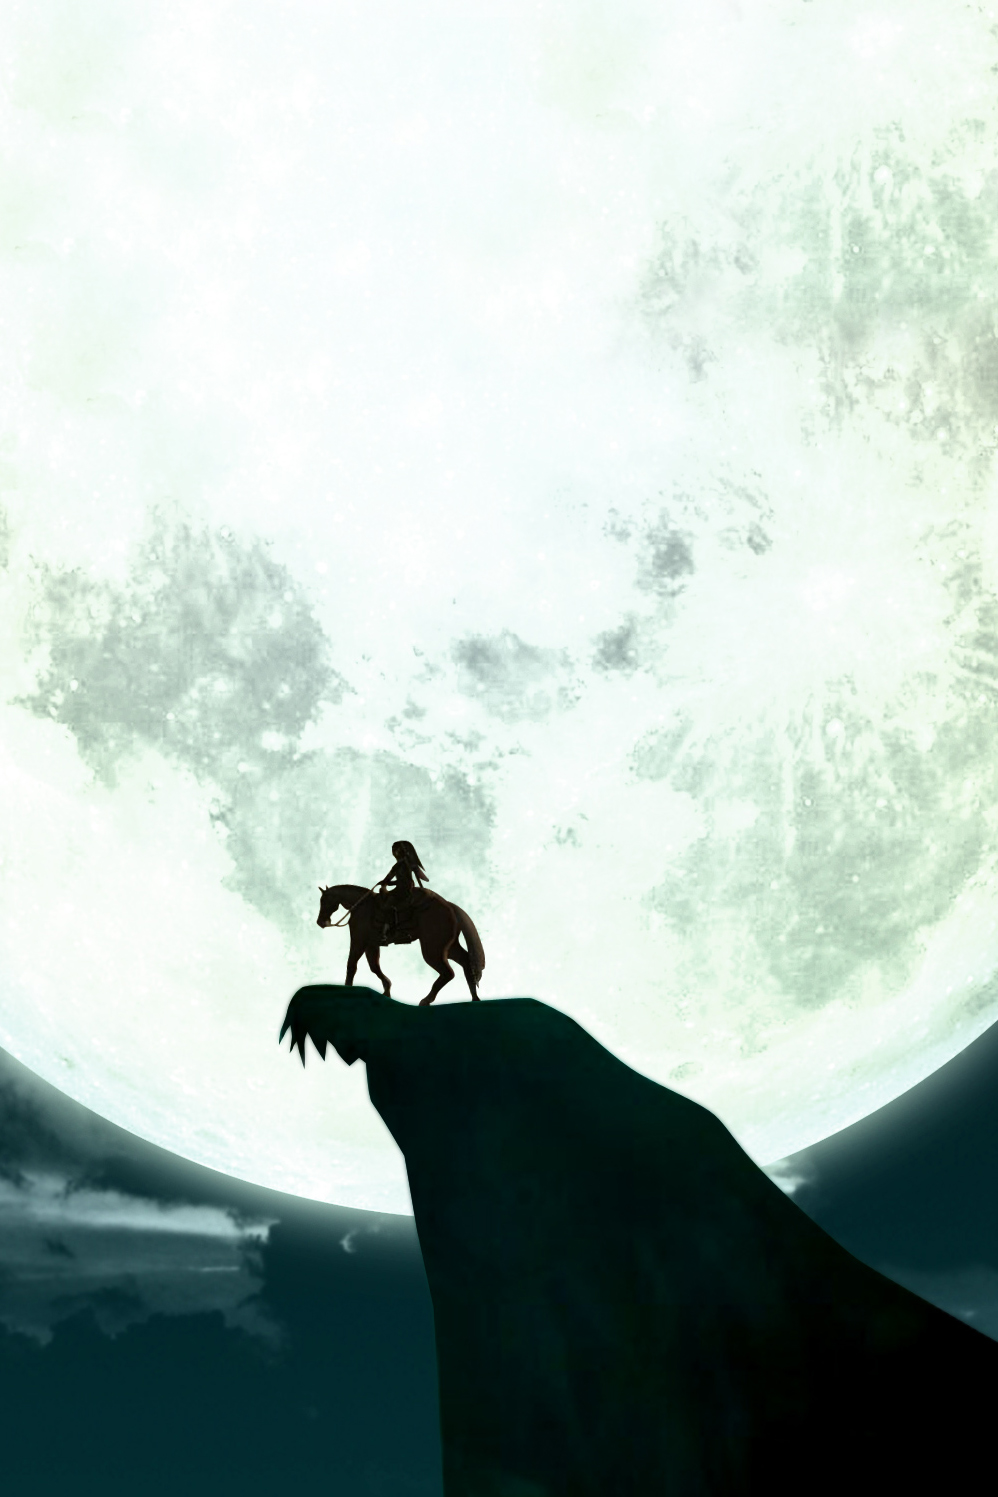 Zelda Horse Silhouette Android Wallpaper